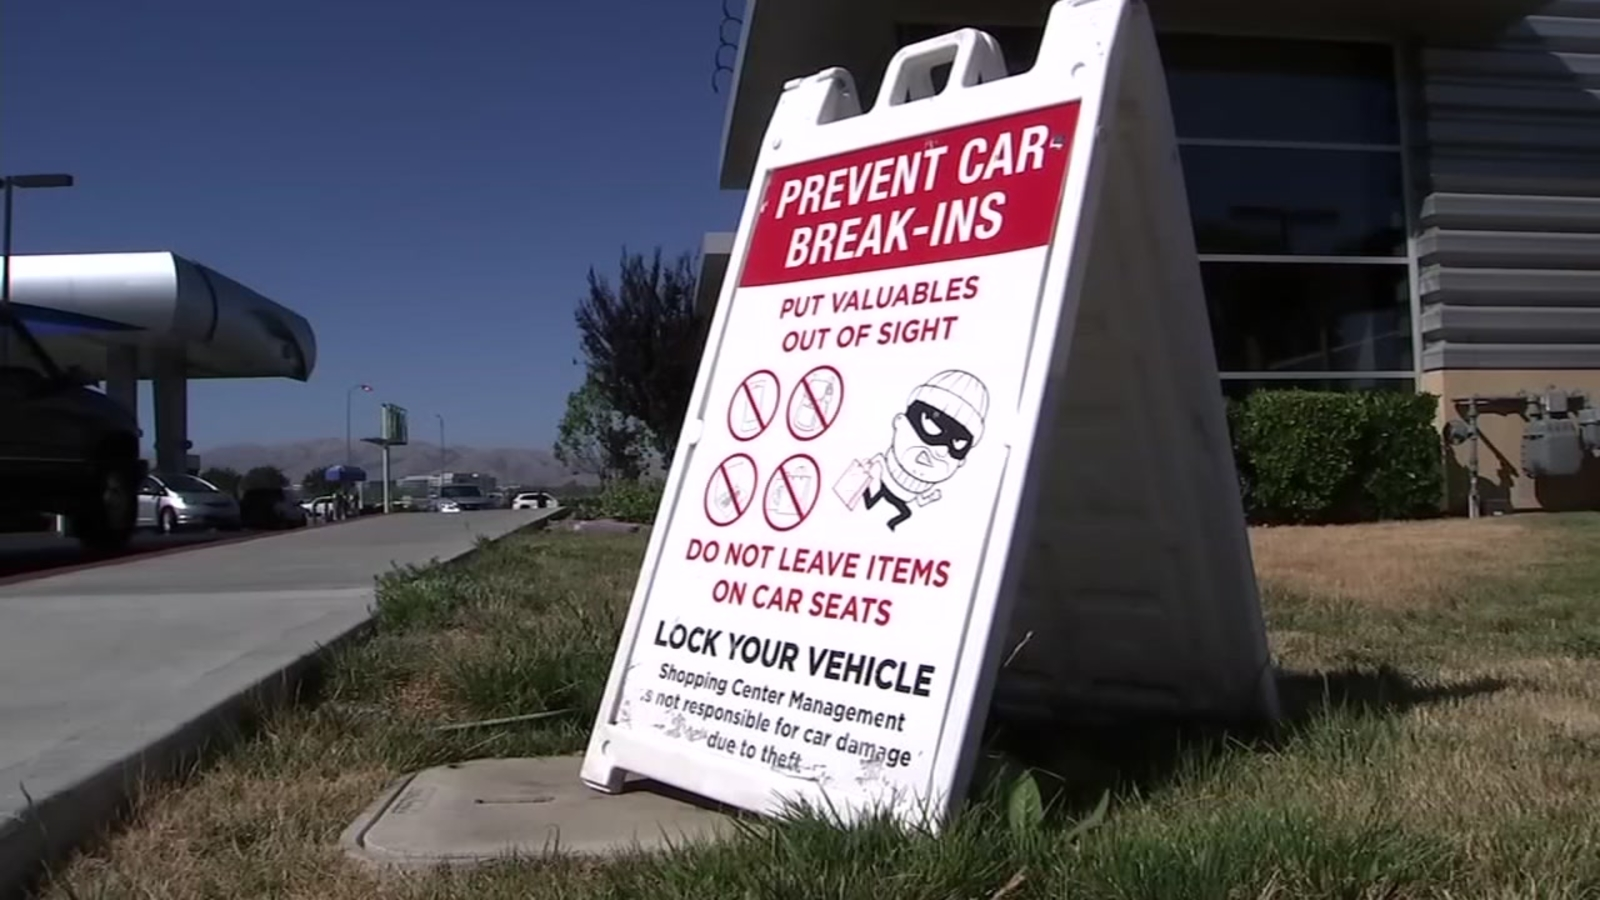 San Jose police working to prevent high-tech car burglaries